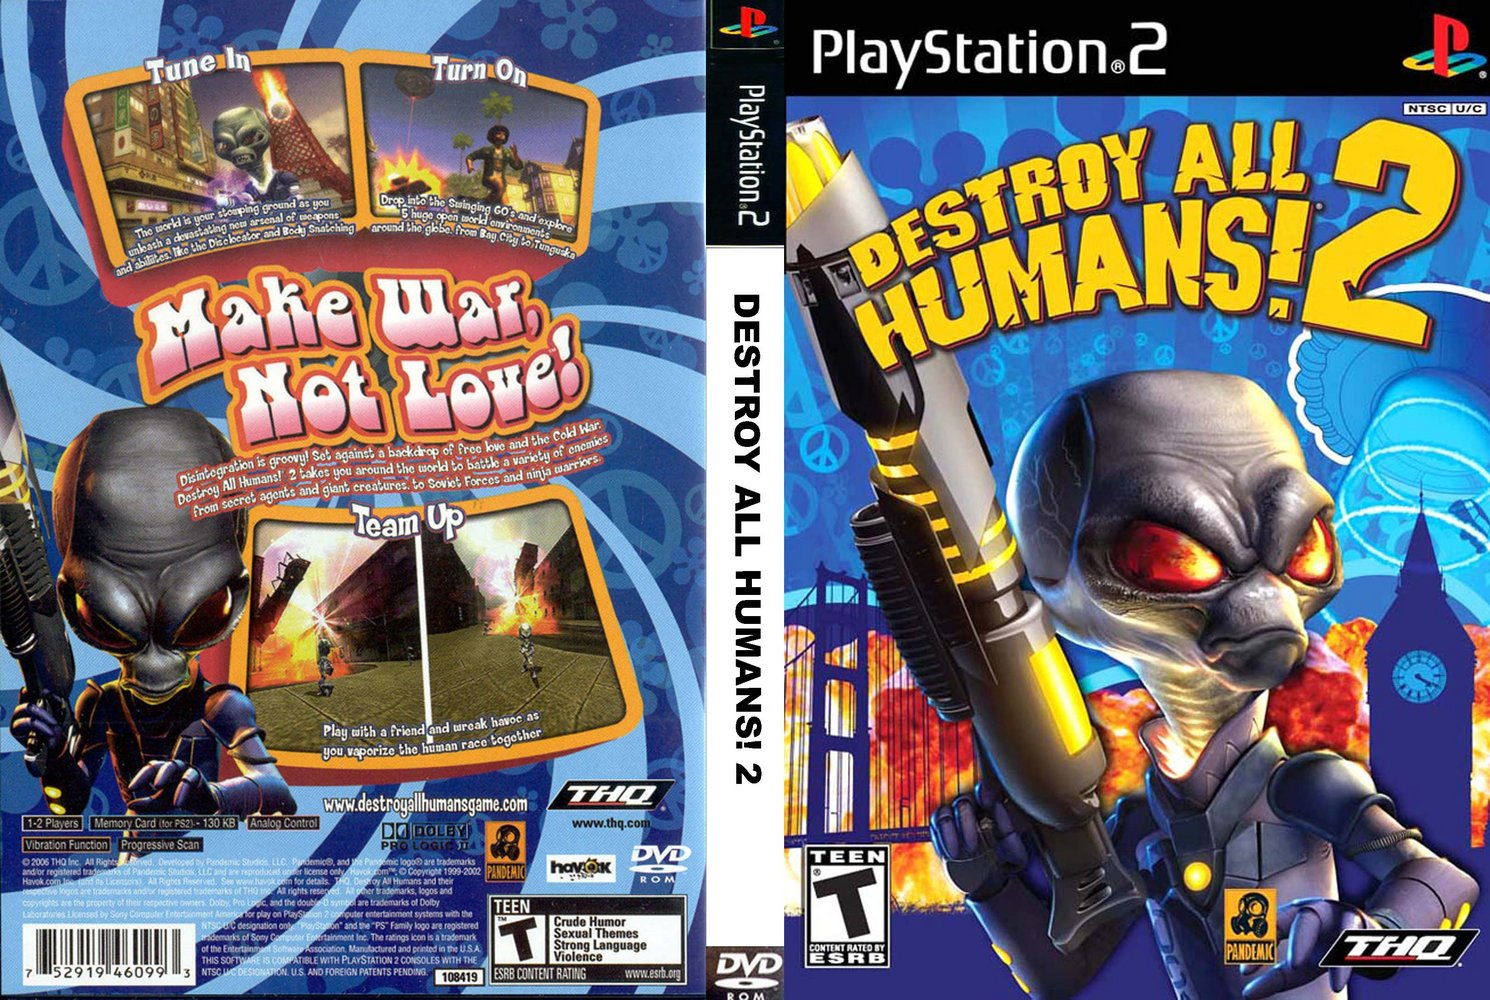 Destroy all humans free porn adult pic